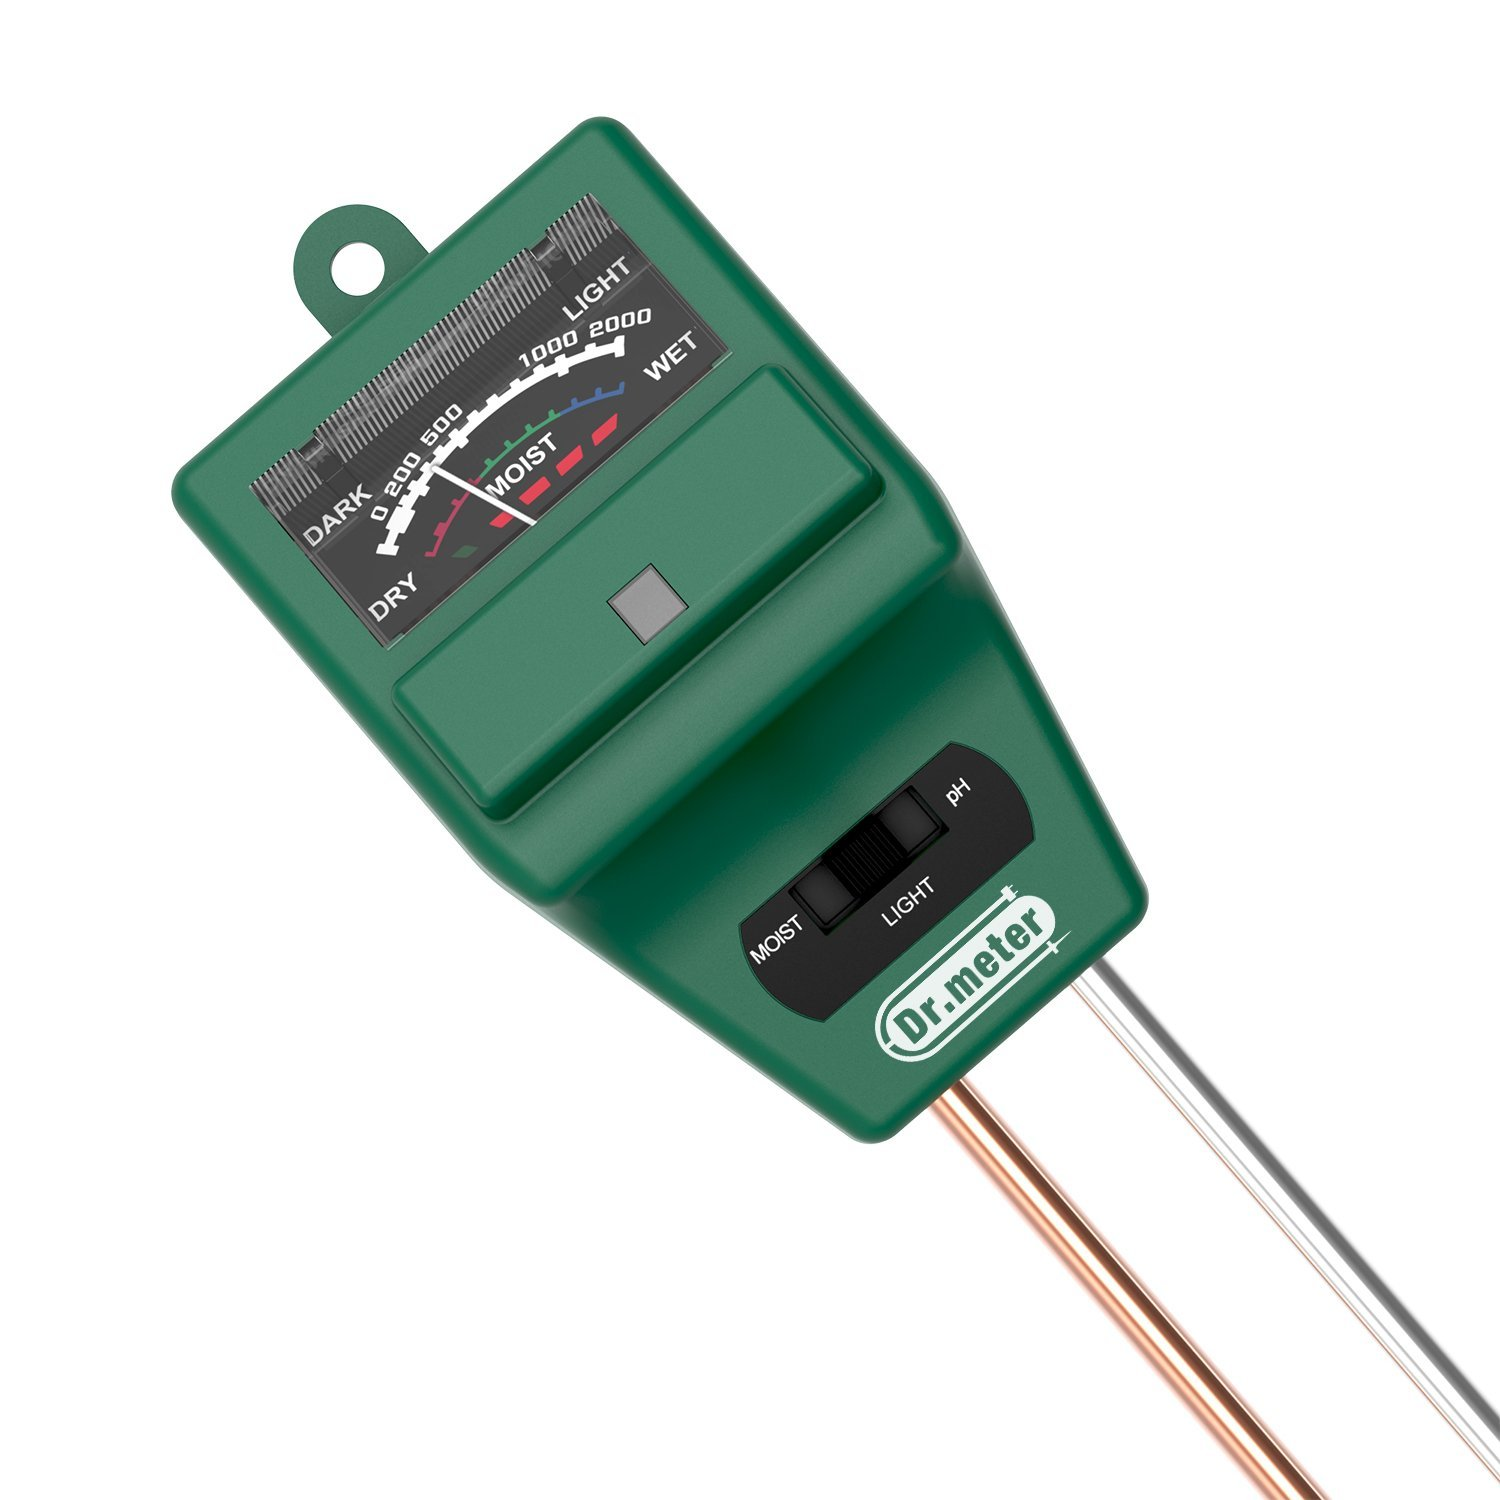 Dr.meter S30PLUS Upgrade 3 in 1 Soil Moisture Meter, Sunlight PH Acidity Soil Tester Kit